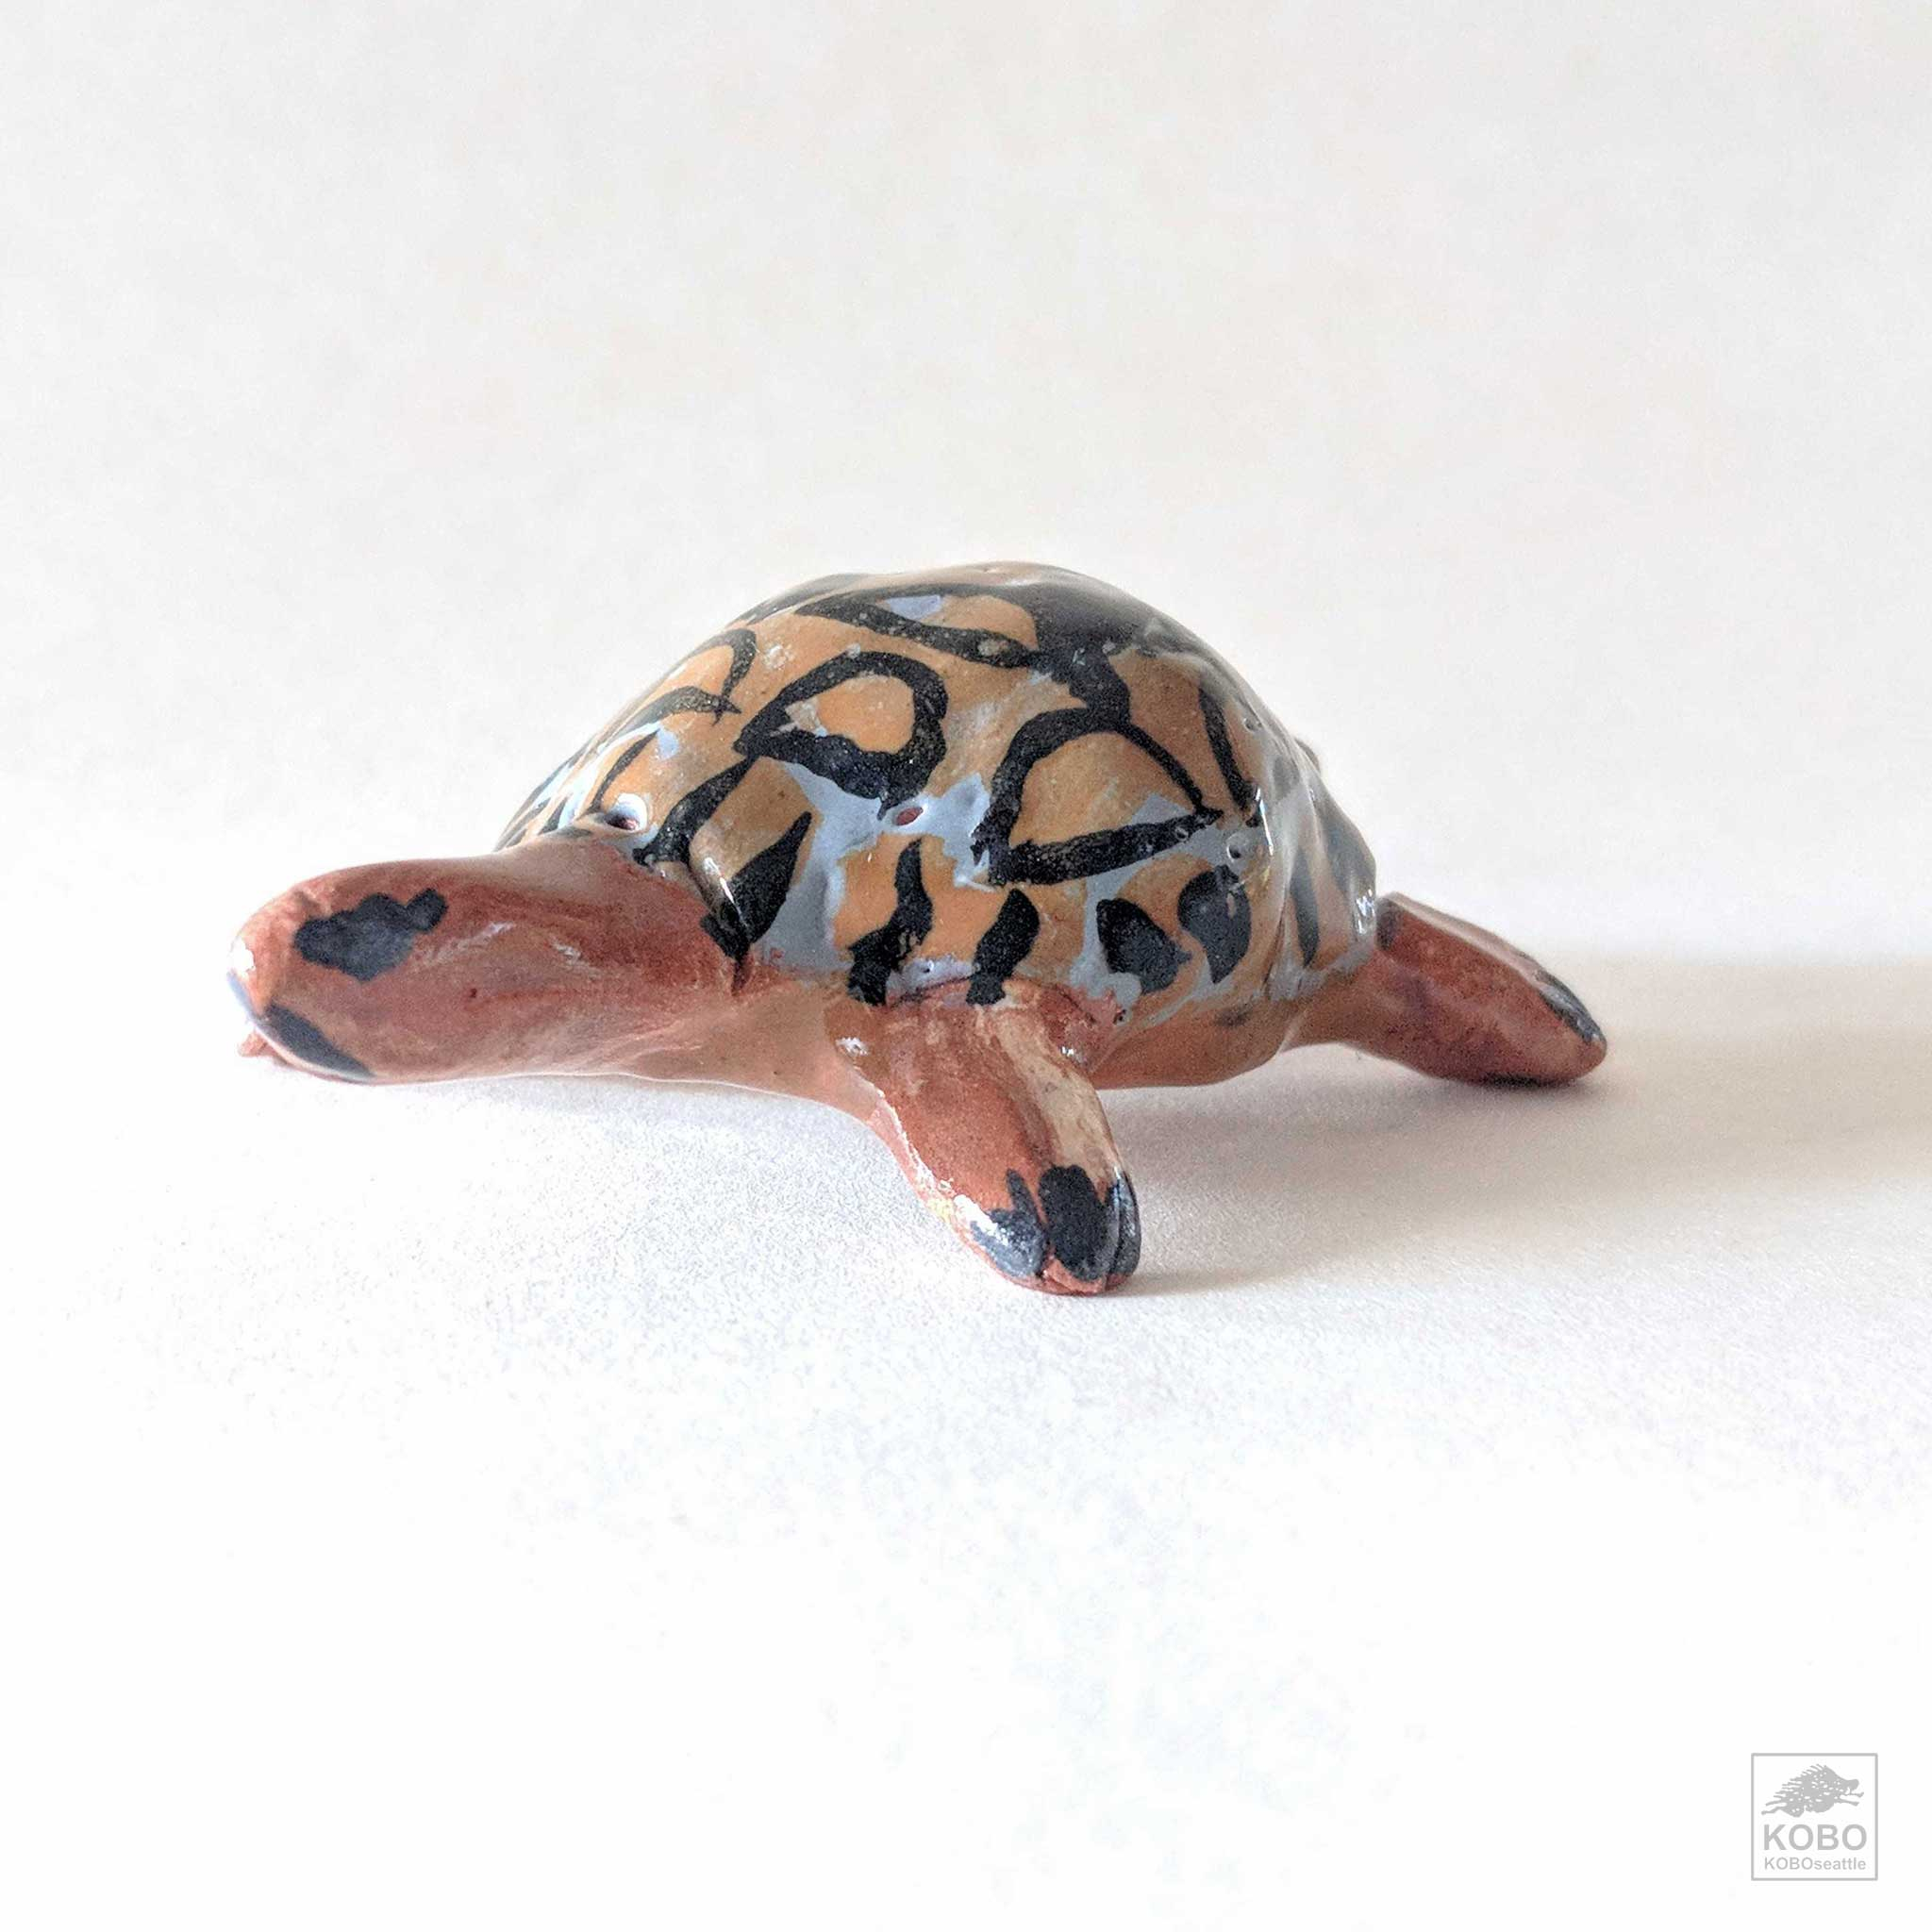 Turtle with Dark Brown and Blue